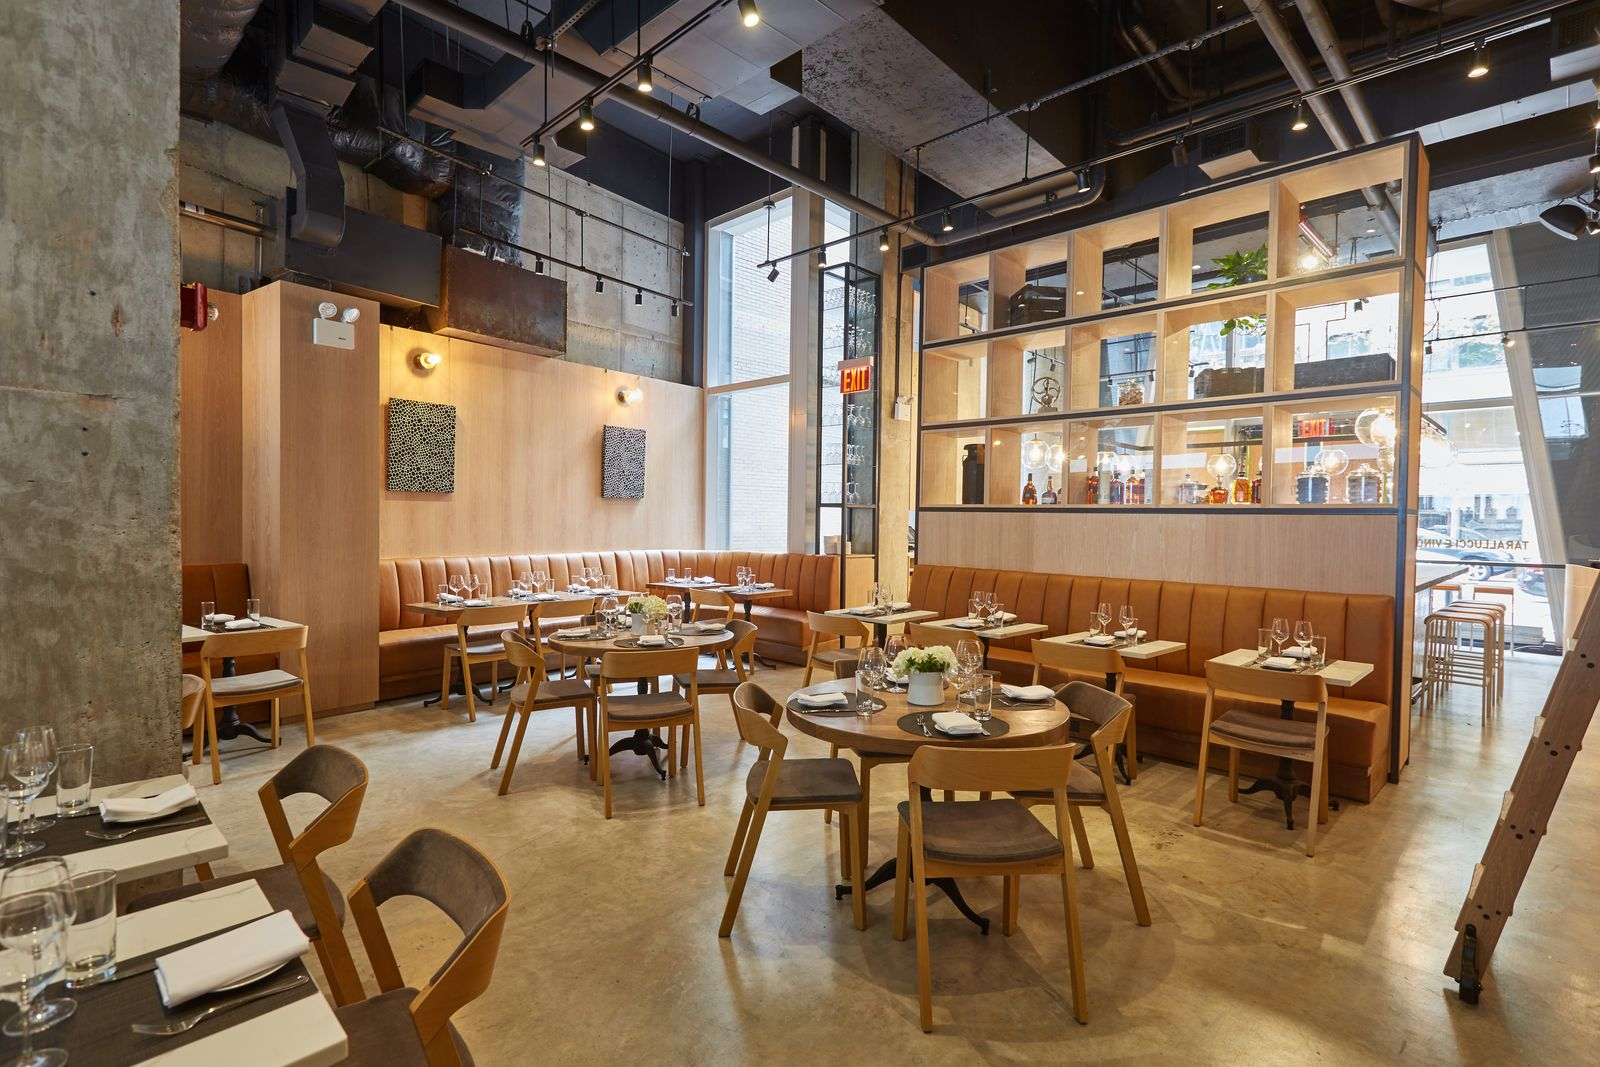 Tarallucci e Vino nomad location is now open